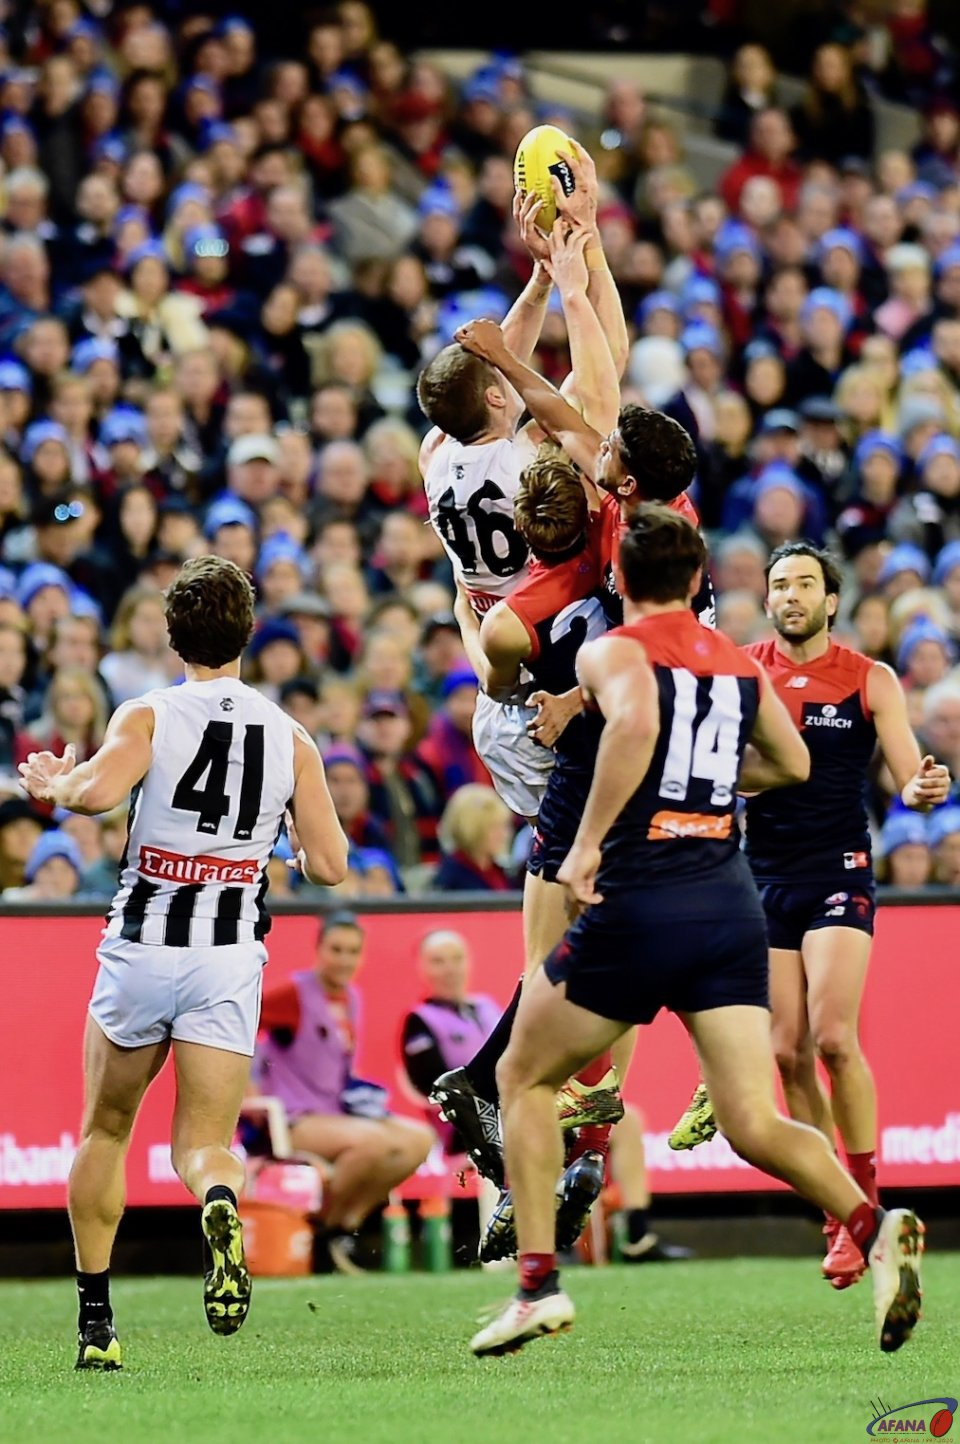 Mason Cox outreaches the Dees in a marking contest